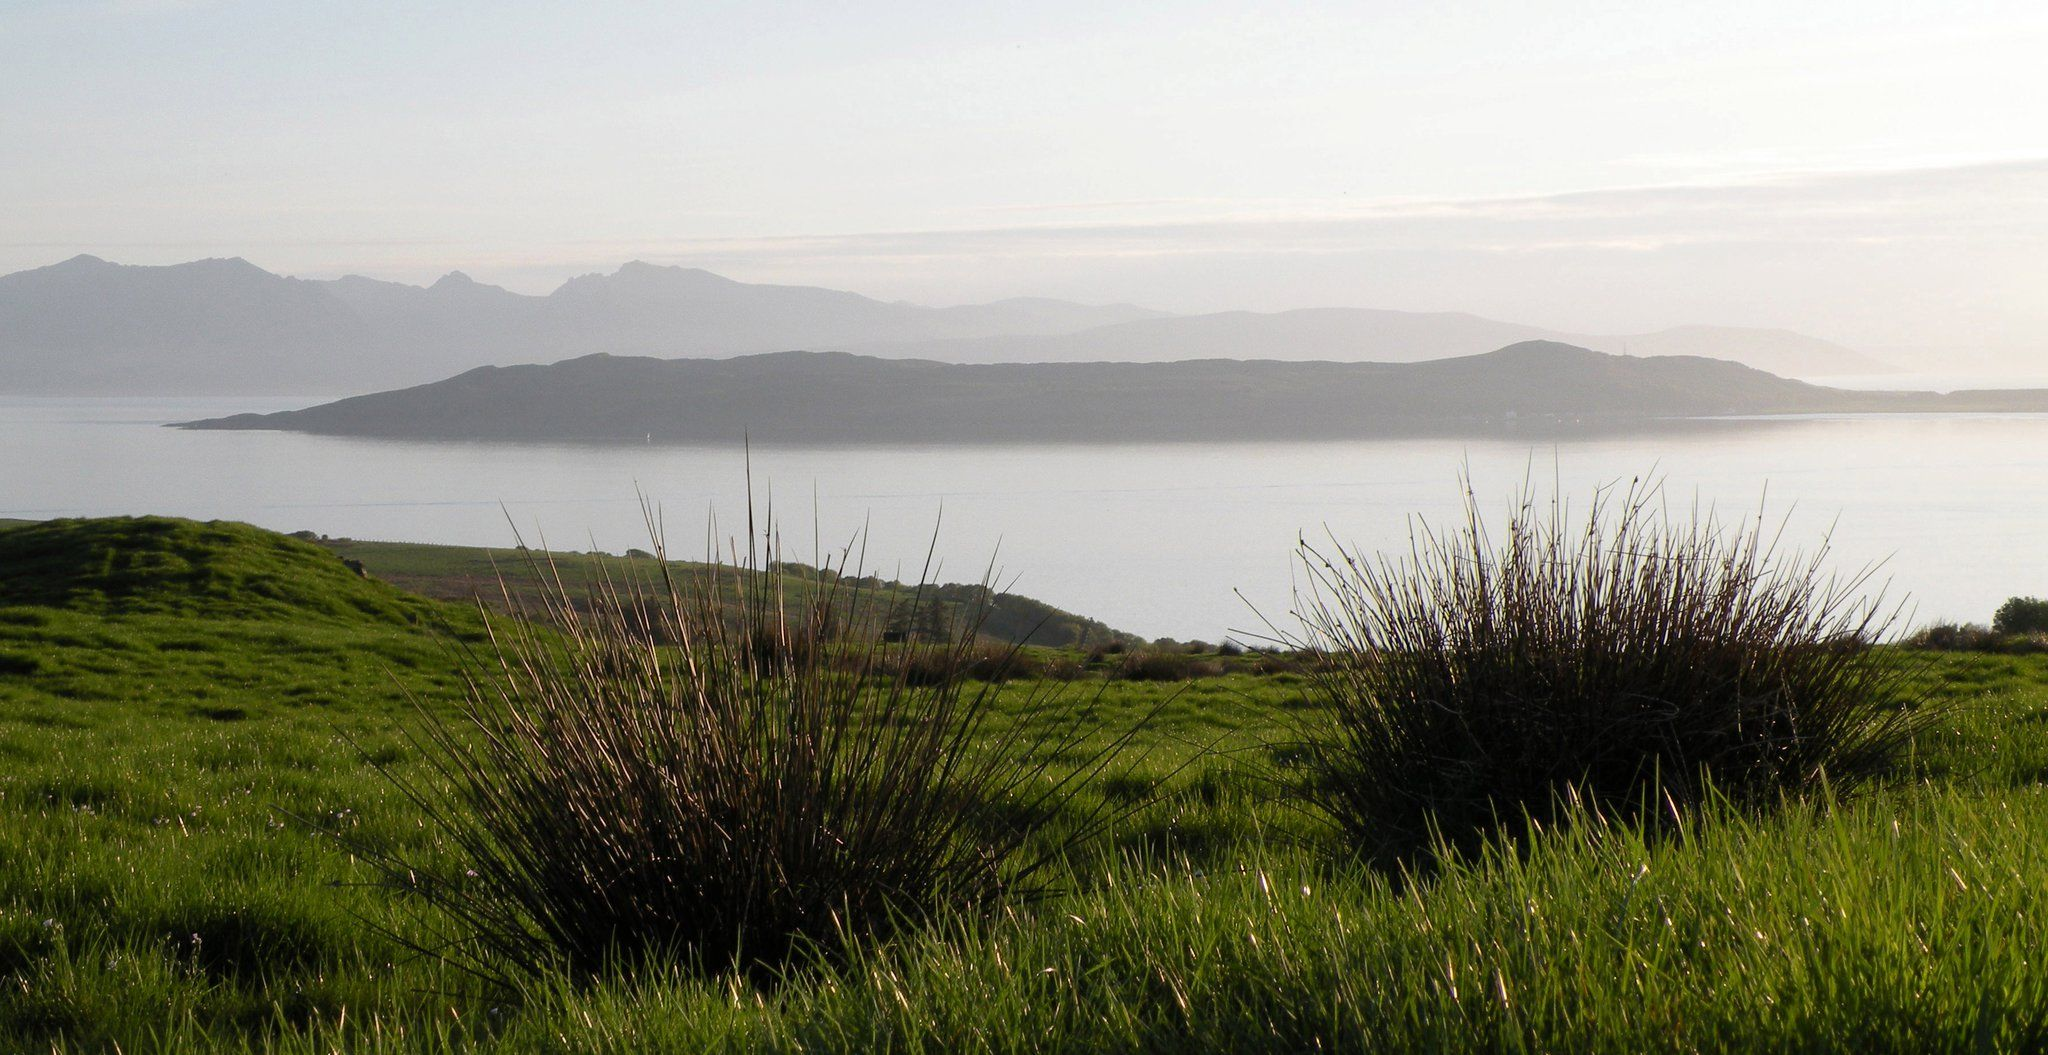 On the Island of Cumbrae looking over to Arran, on the west coast.